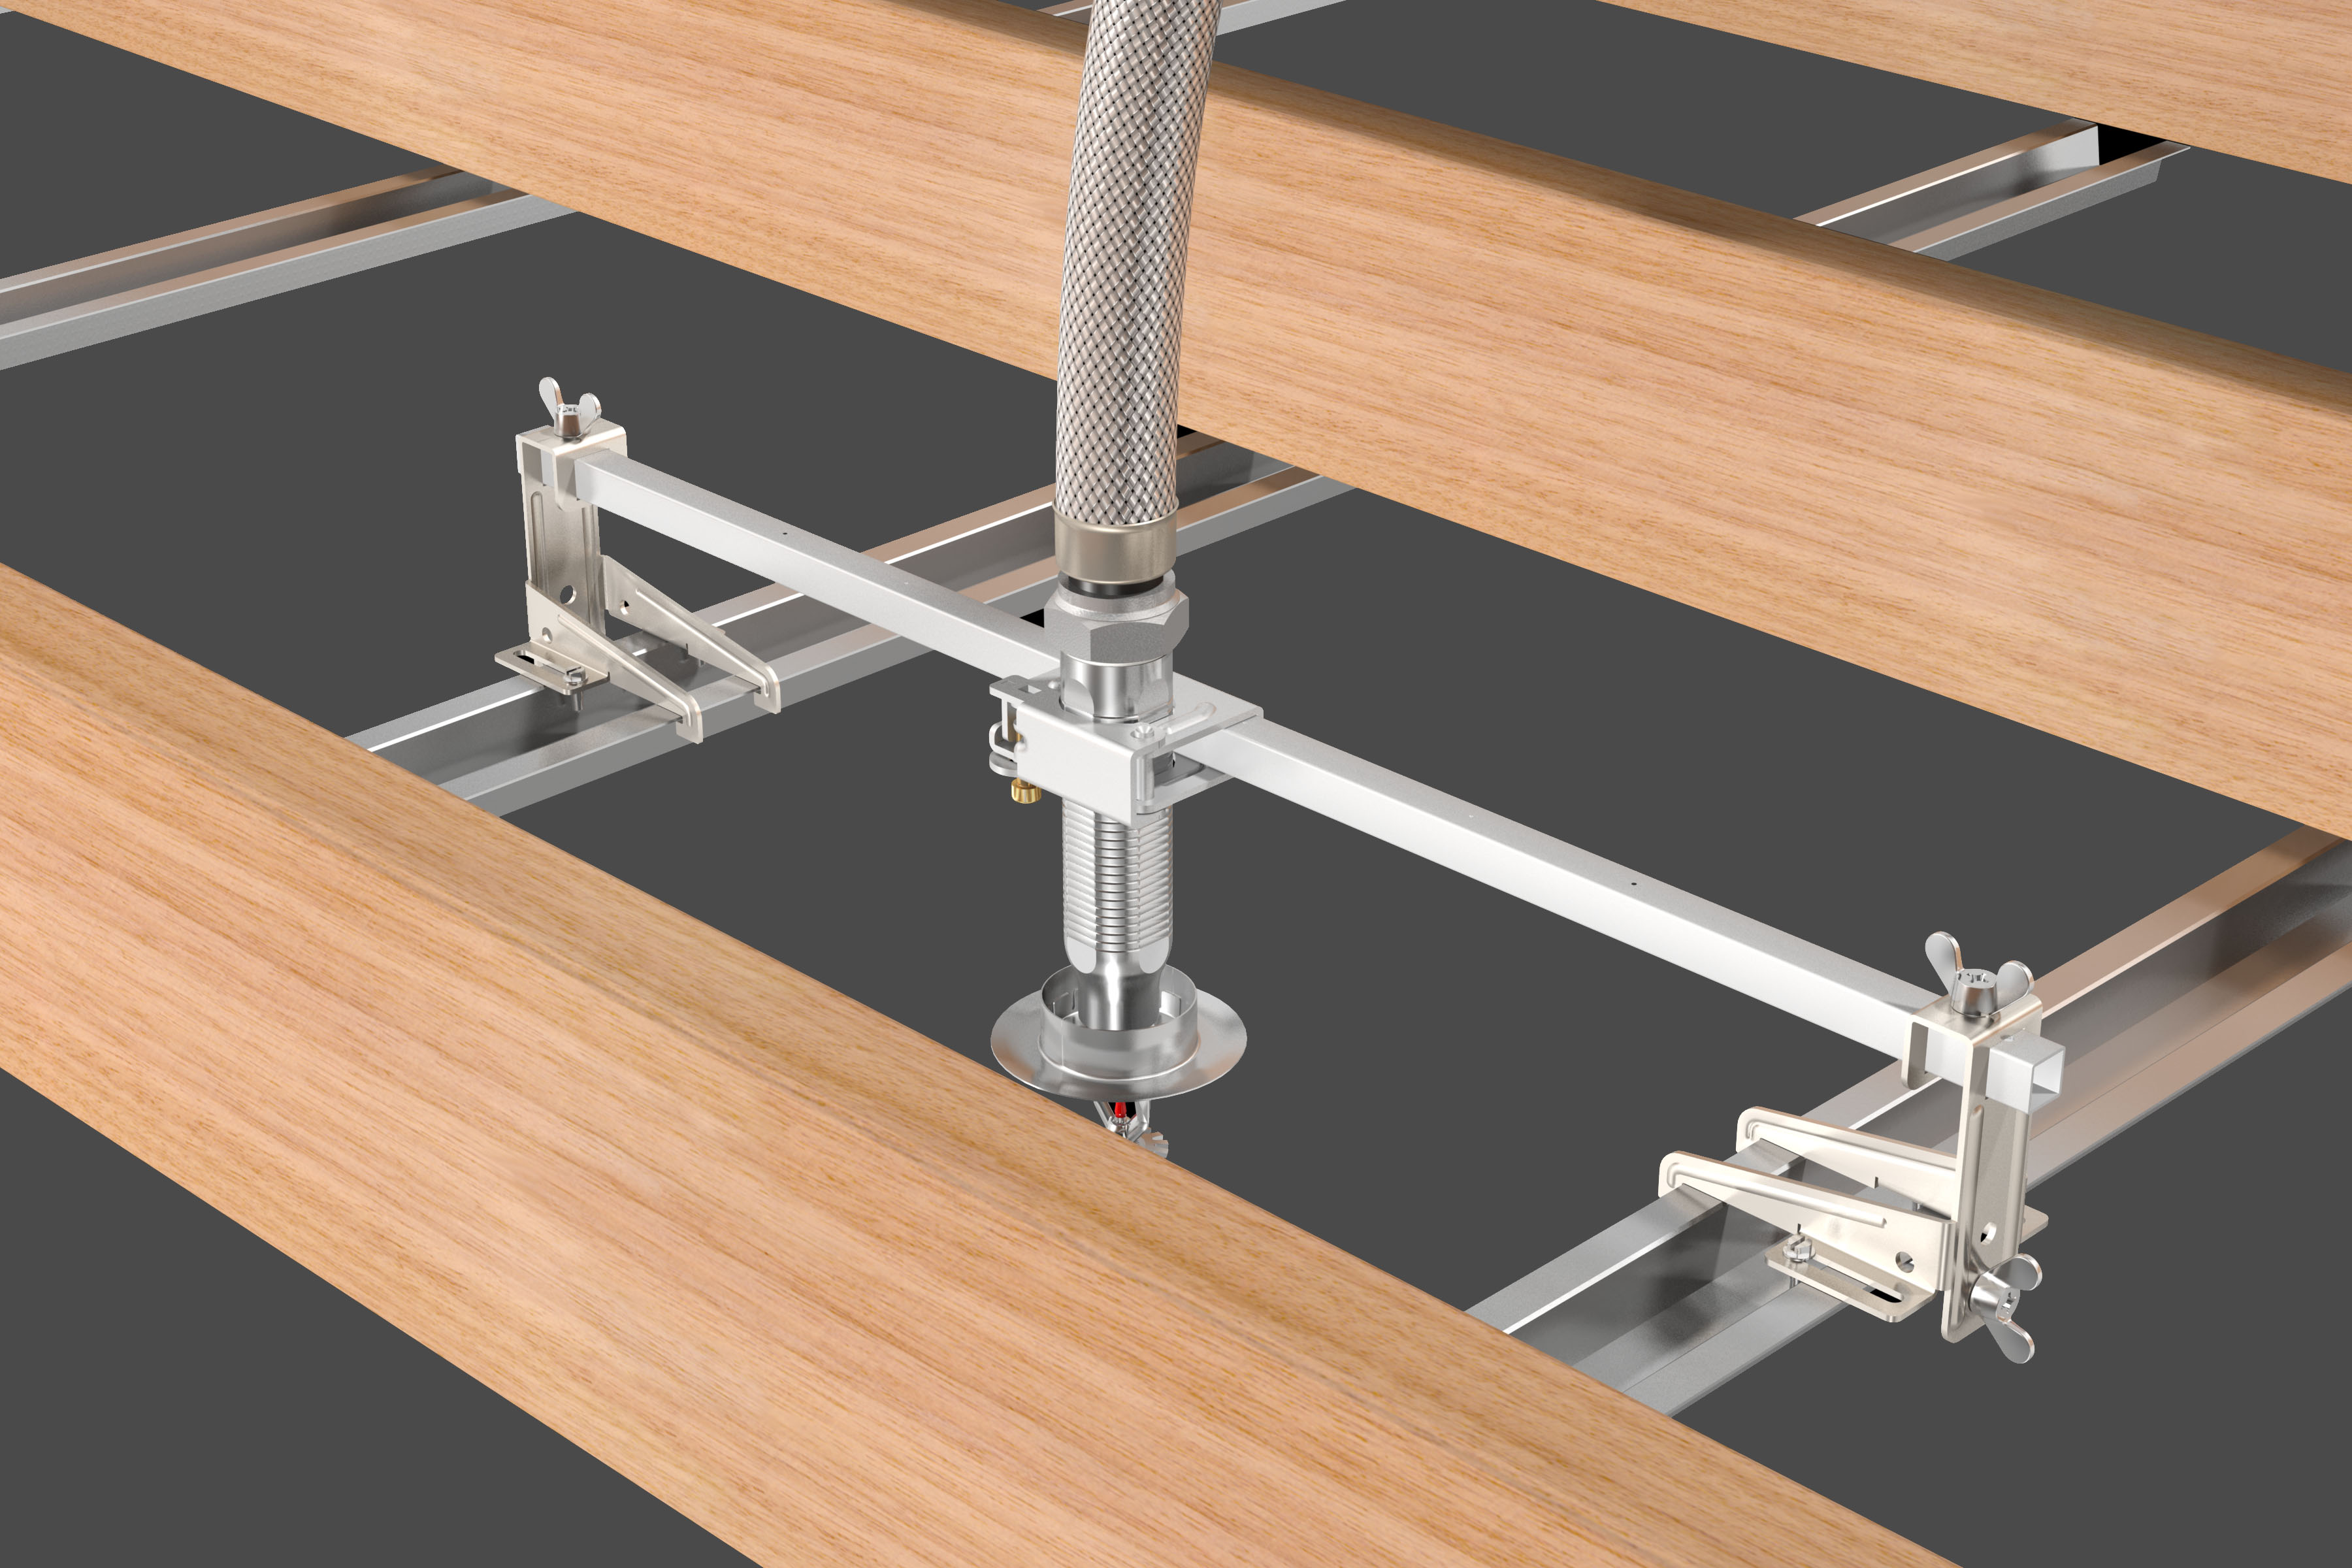 Victaulic Expands VicFlex Line with New Bracket Solutions